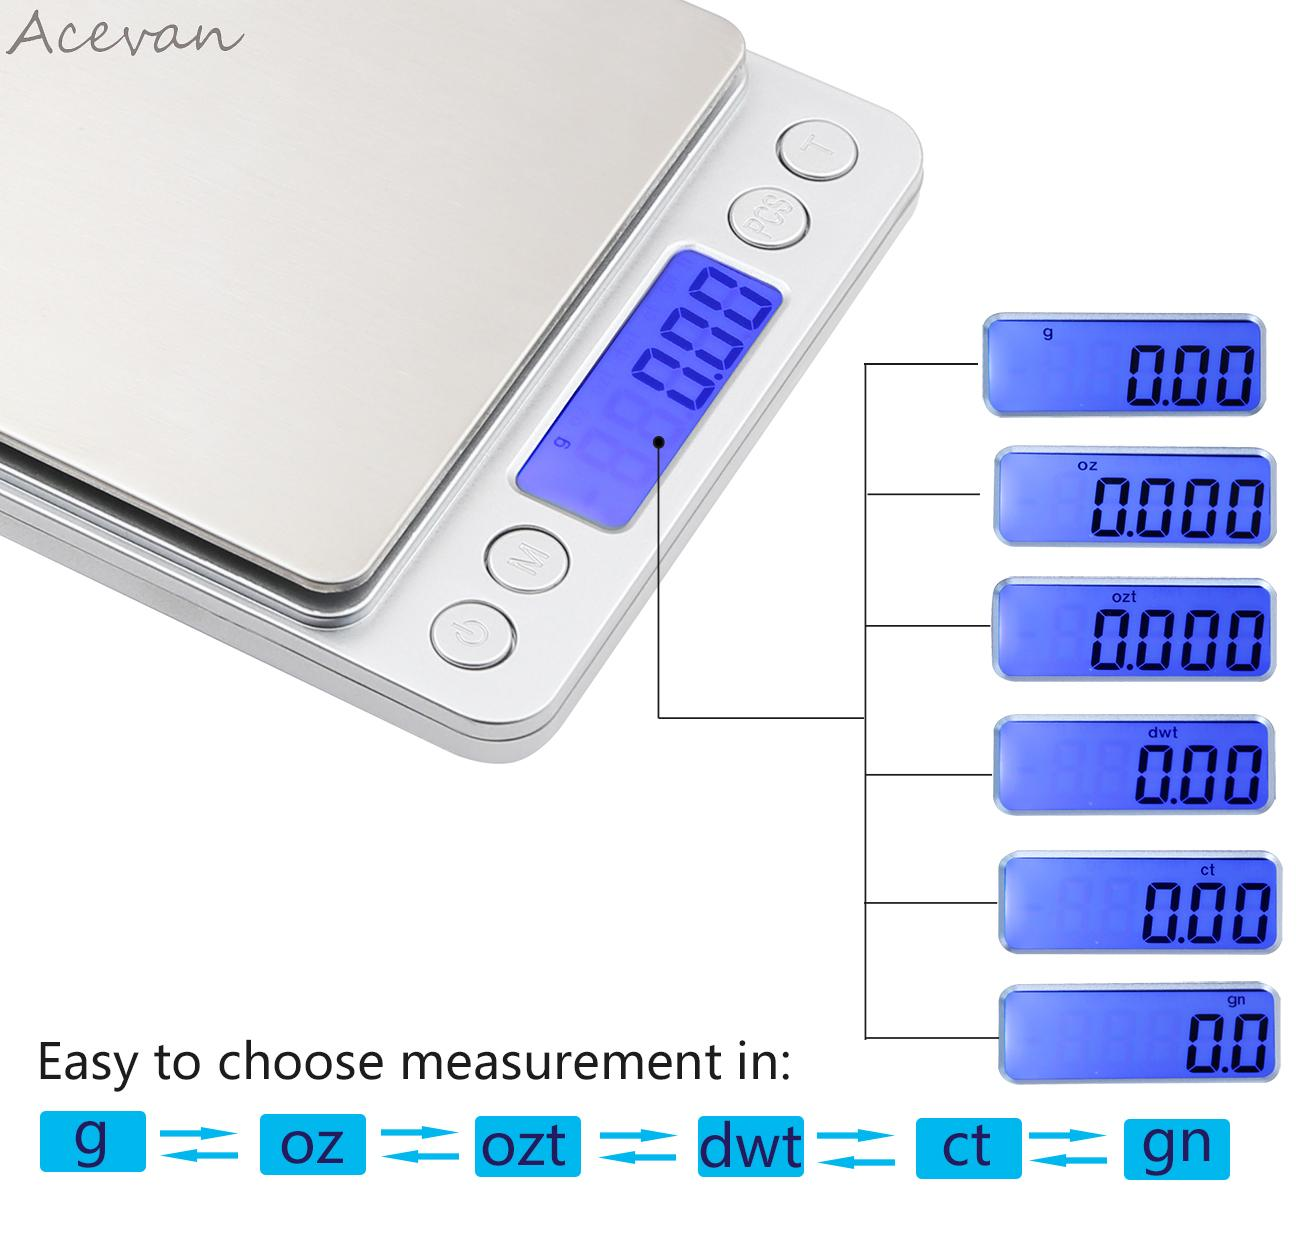 Acevan 500g001g digital pocket stainless jewelry kitchen food acevan fandeluxe Gallery